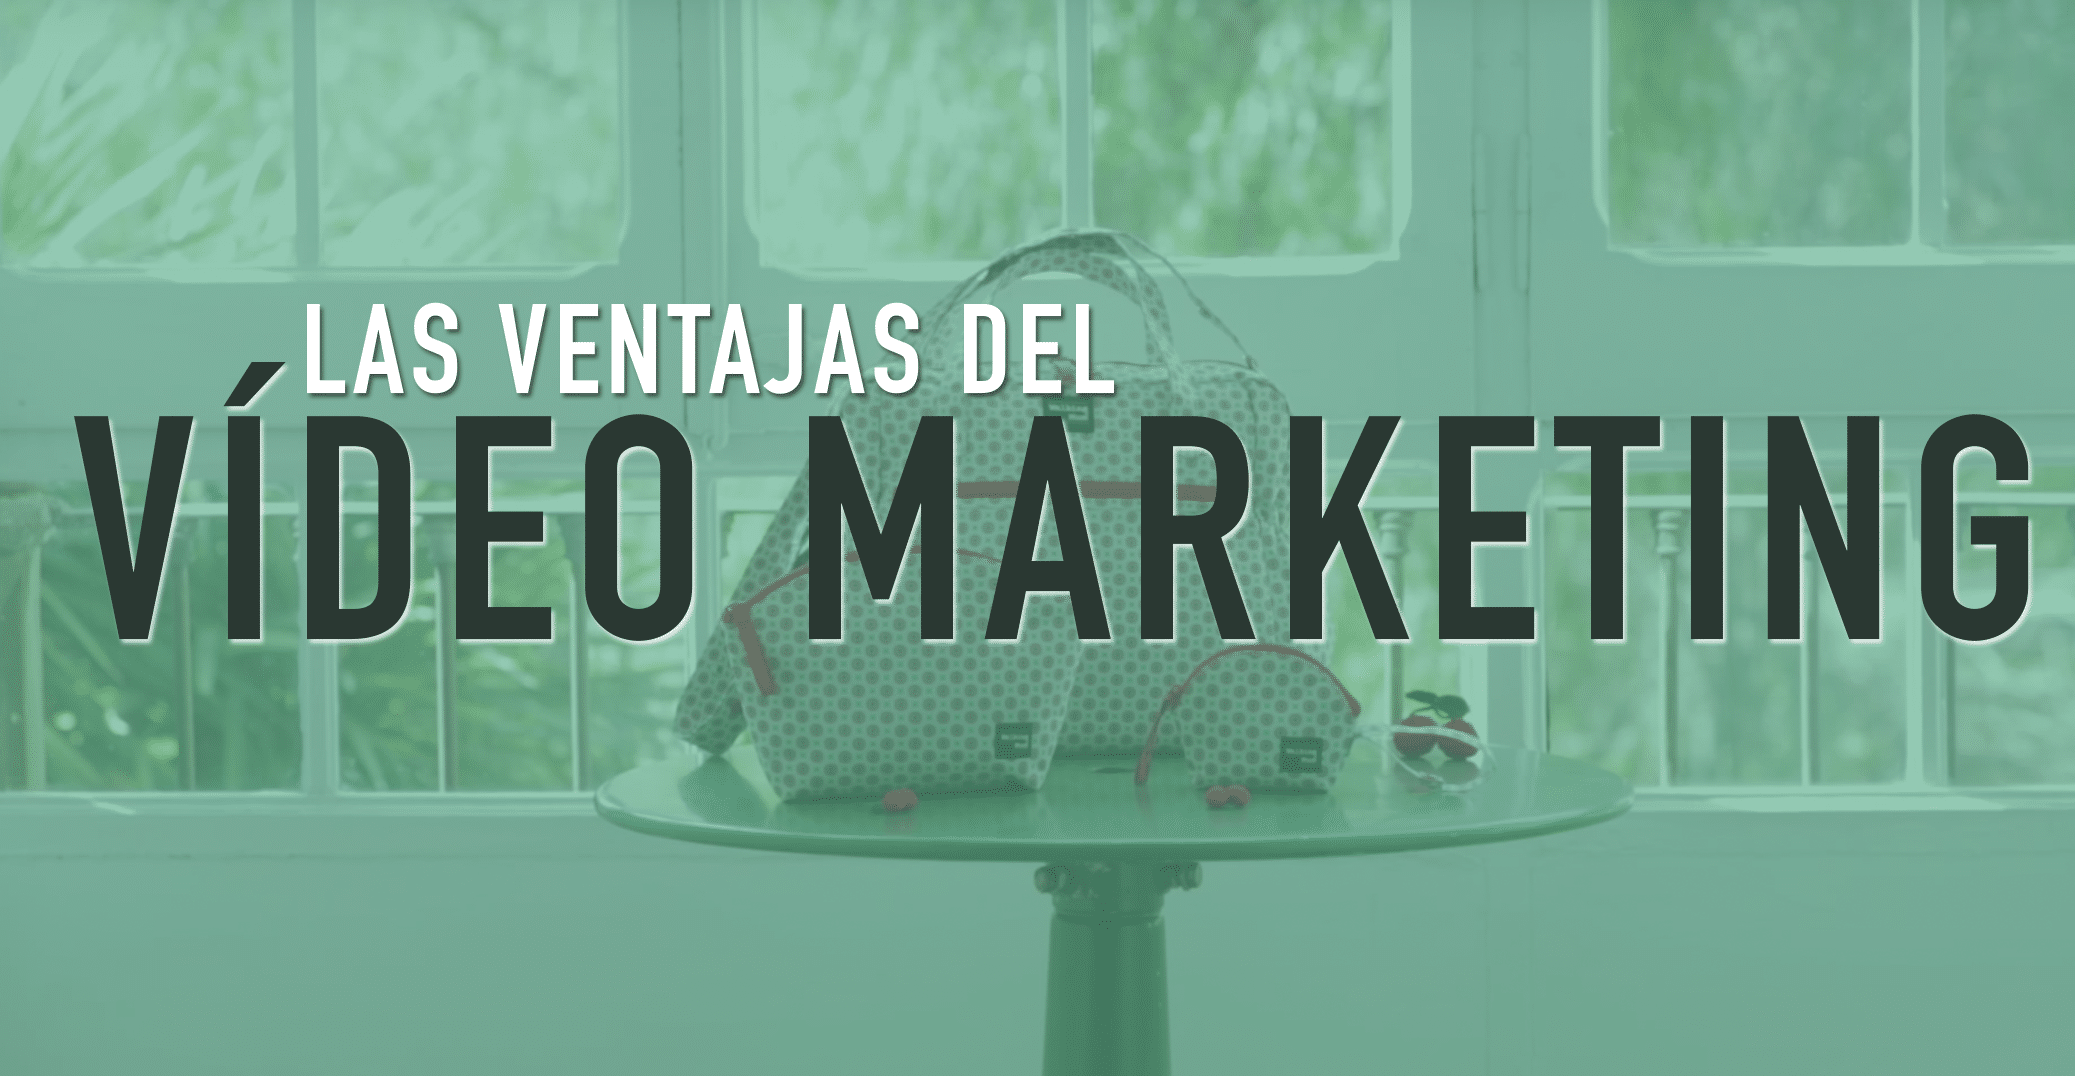 Ventajas del vídeo marketing